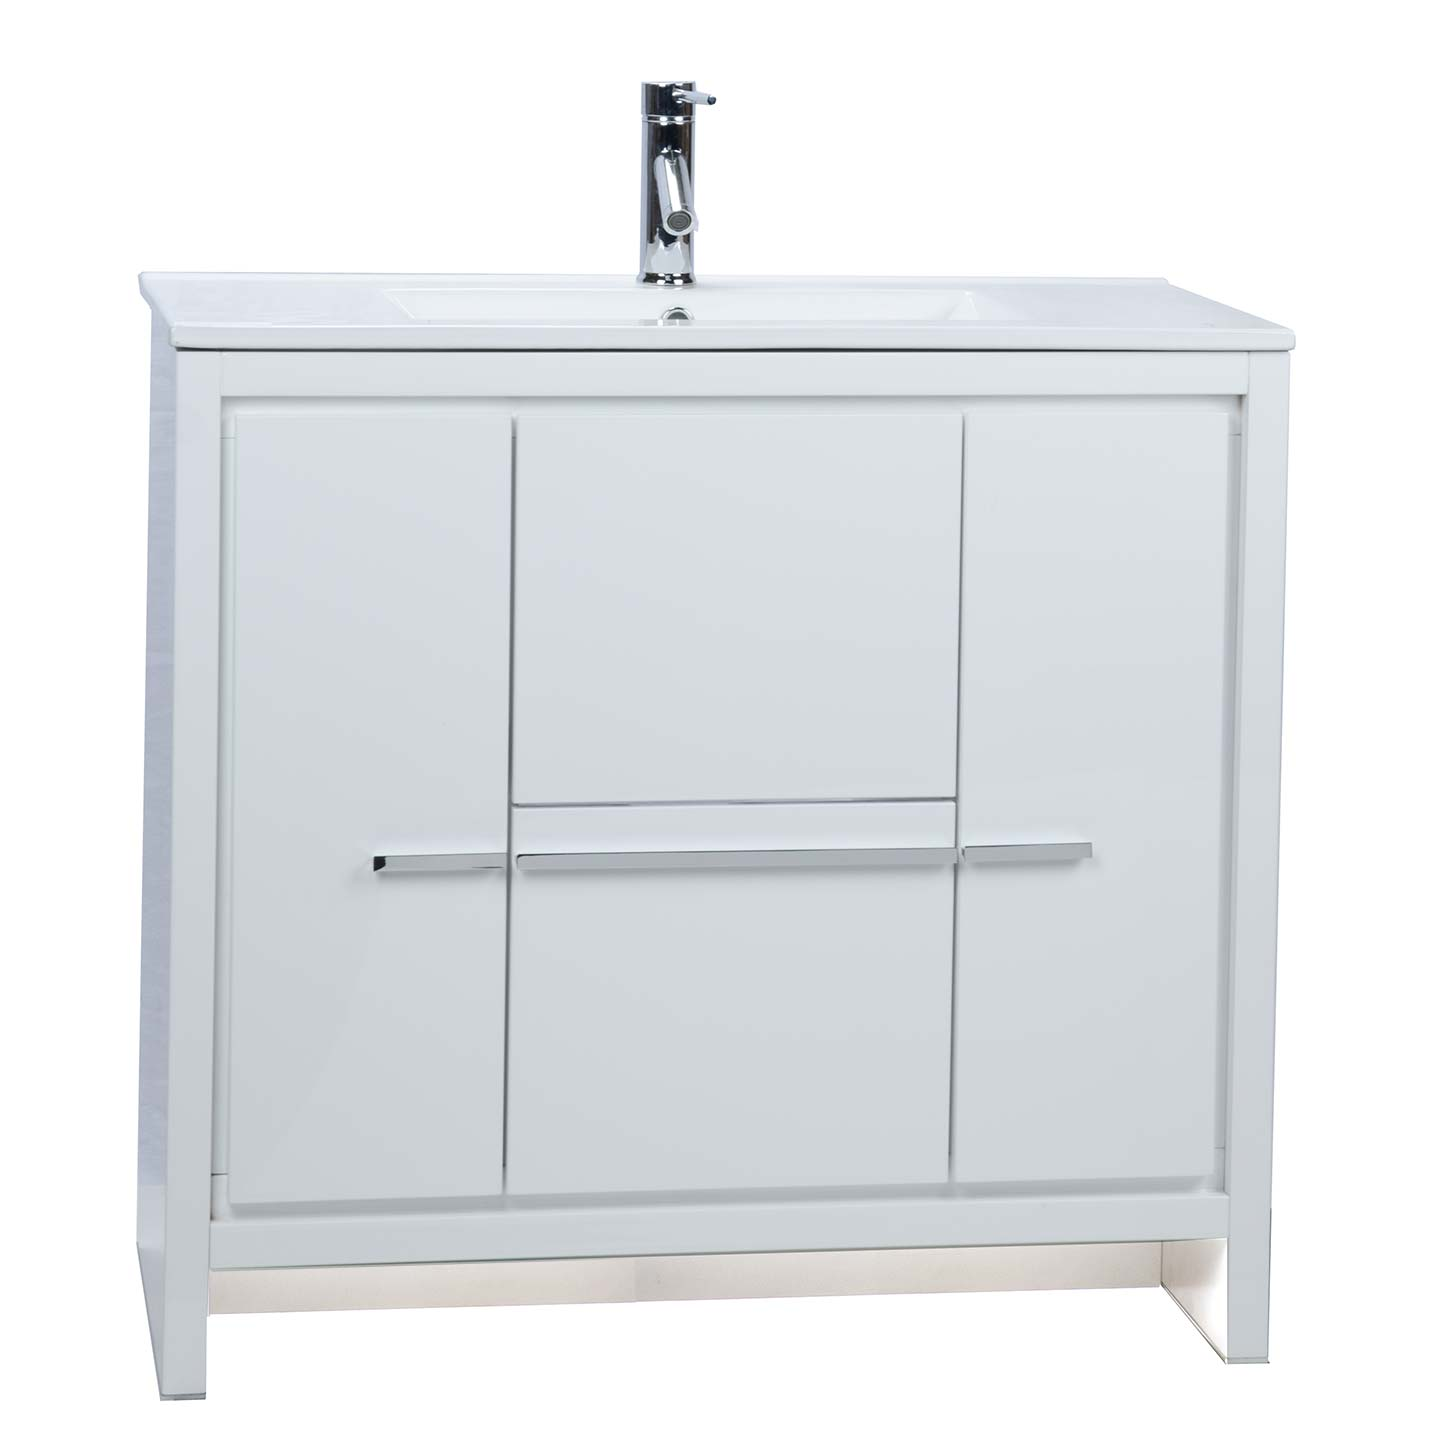 Buy cbi enna 36 inch modern bathroom vanity high gloss for Bathroom cabinets 36